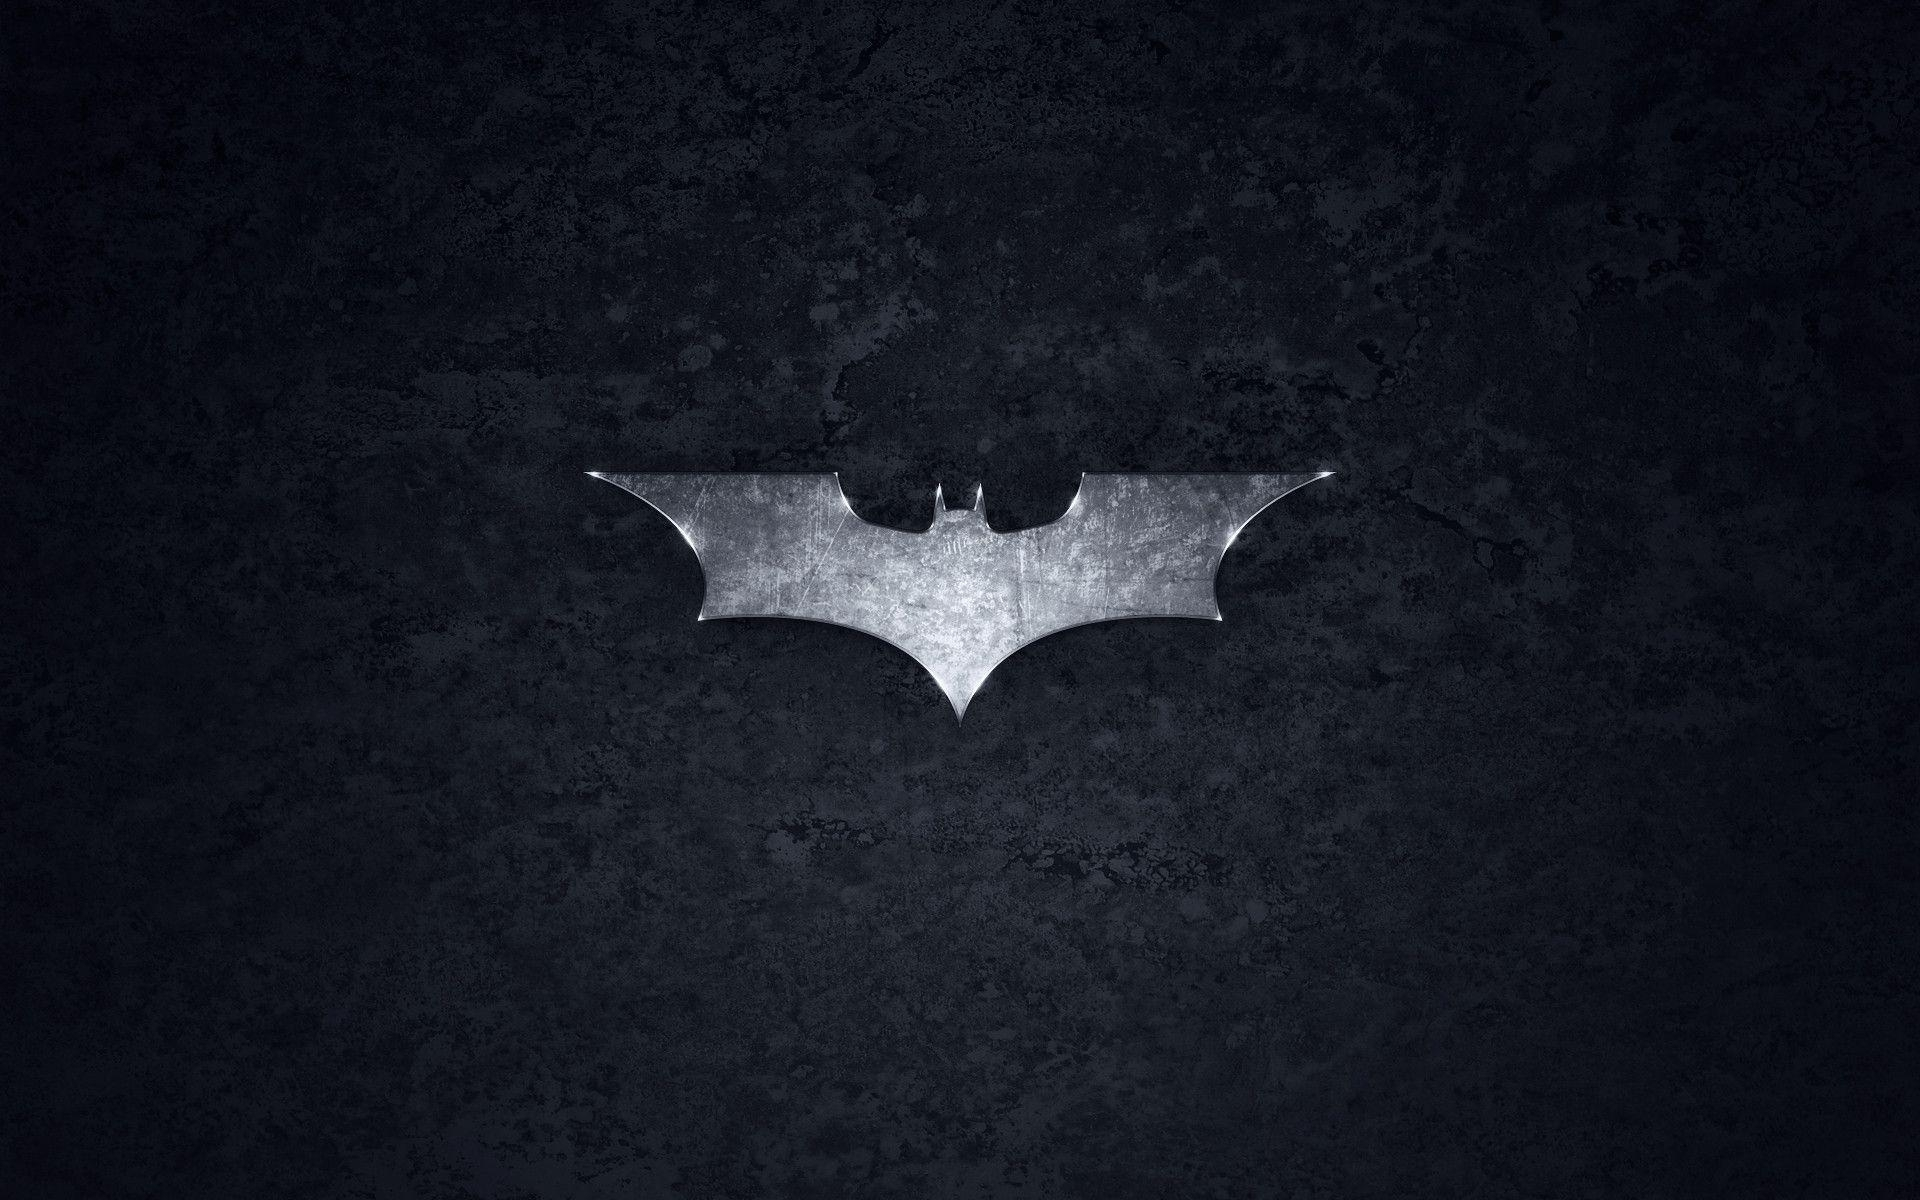 10 Best Batman Logo Wallpaper 1080P Hd FULL HD 1080p For PC Background